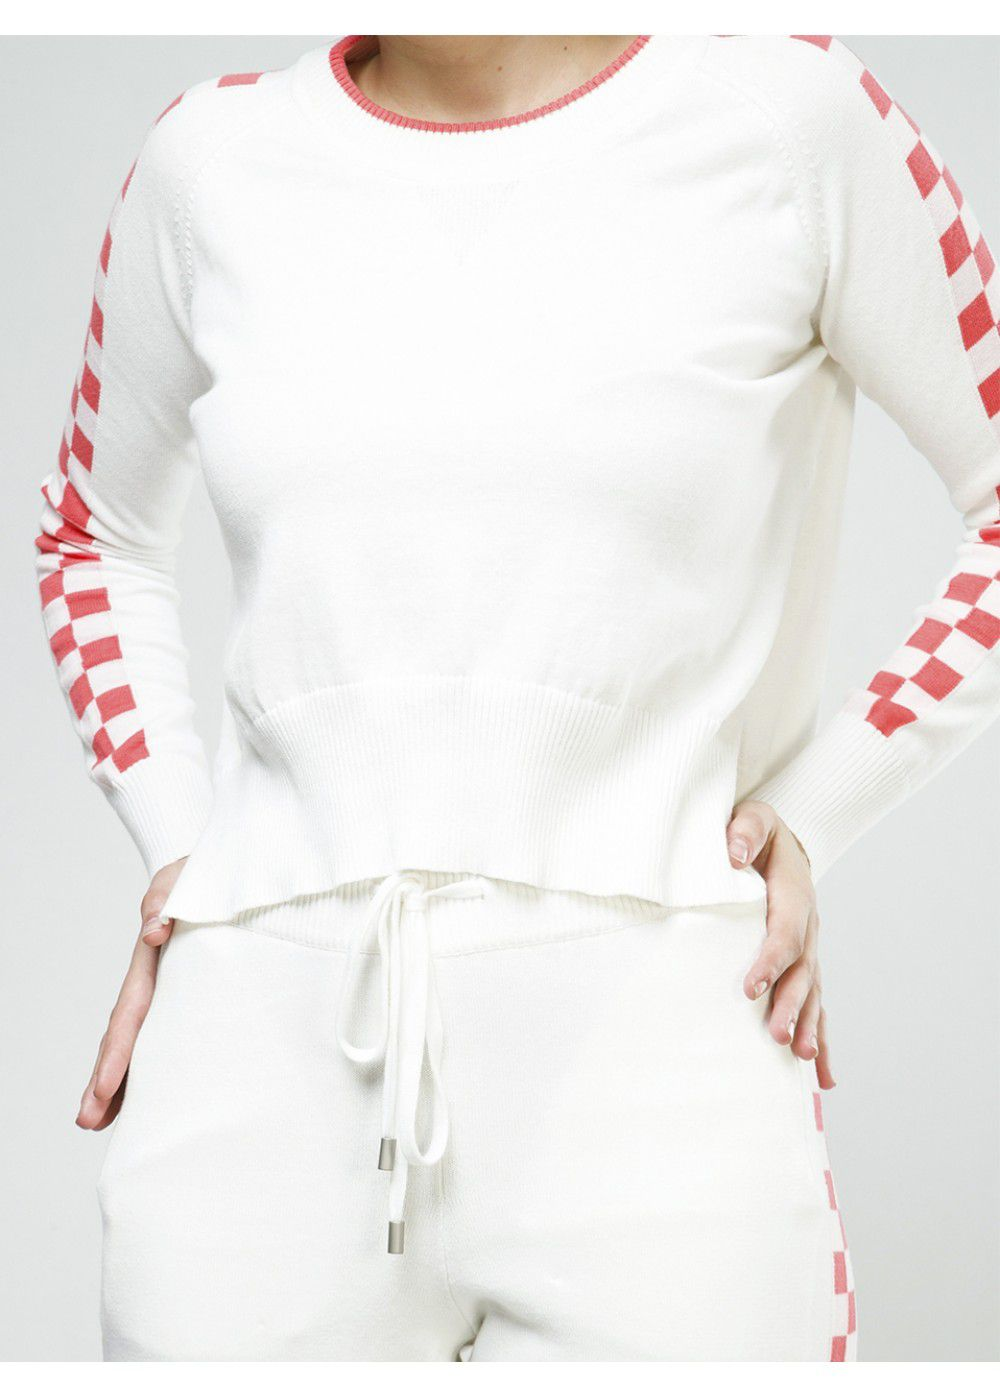 Zoe Jordan Bruni Sweater in White